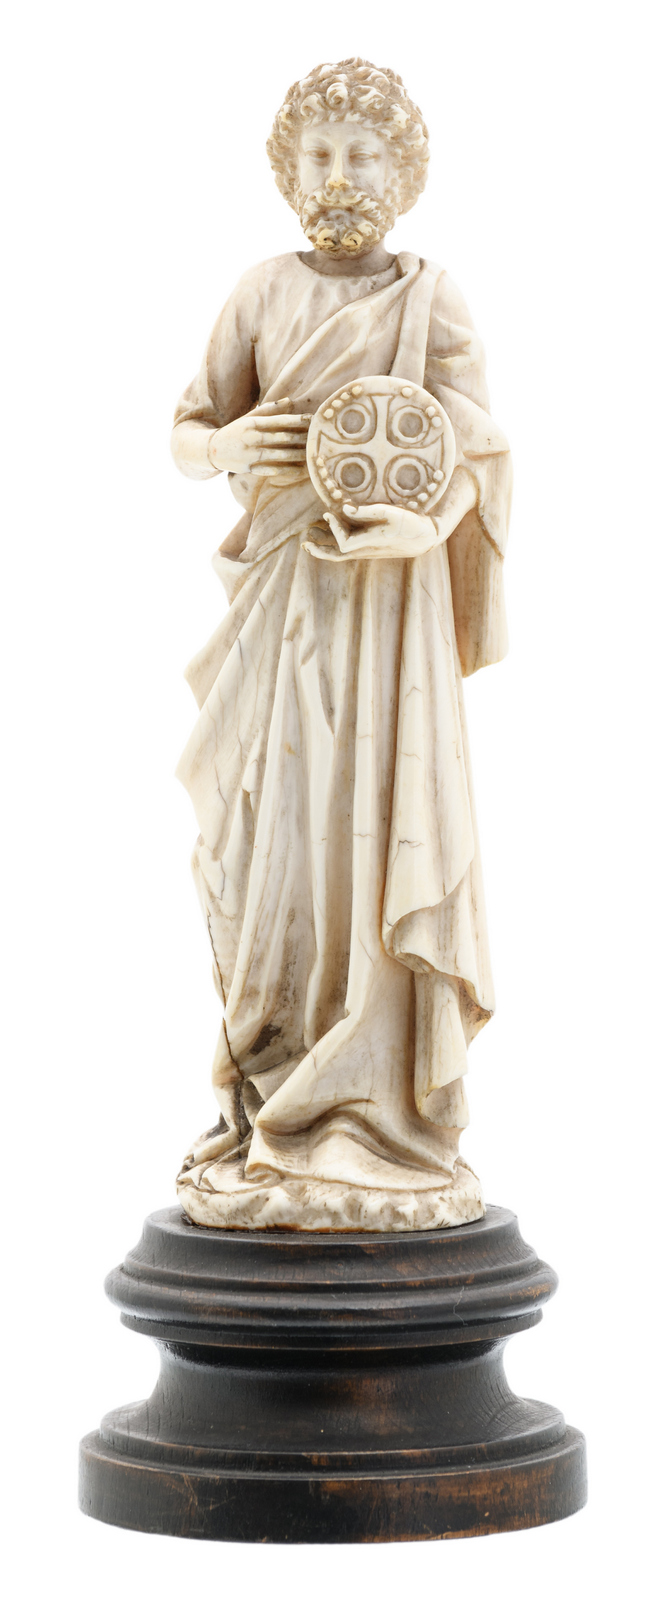 A second half of the 19thC ivory sculpture depicting a saint, on an ebonised wooden base, probably Dieppe, H 17 cm (without base) - 20,5 cm (with base)